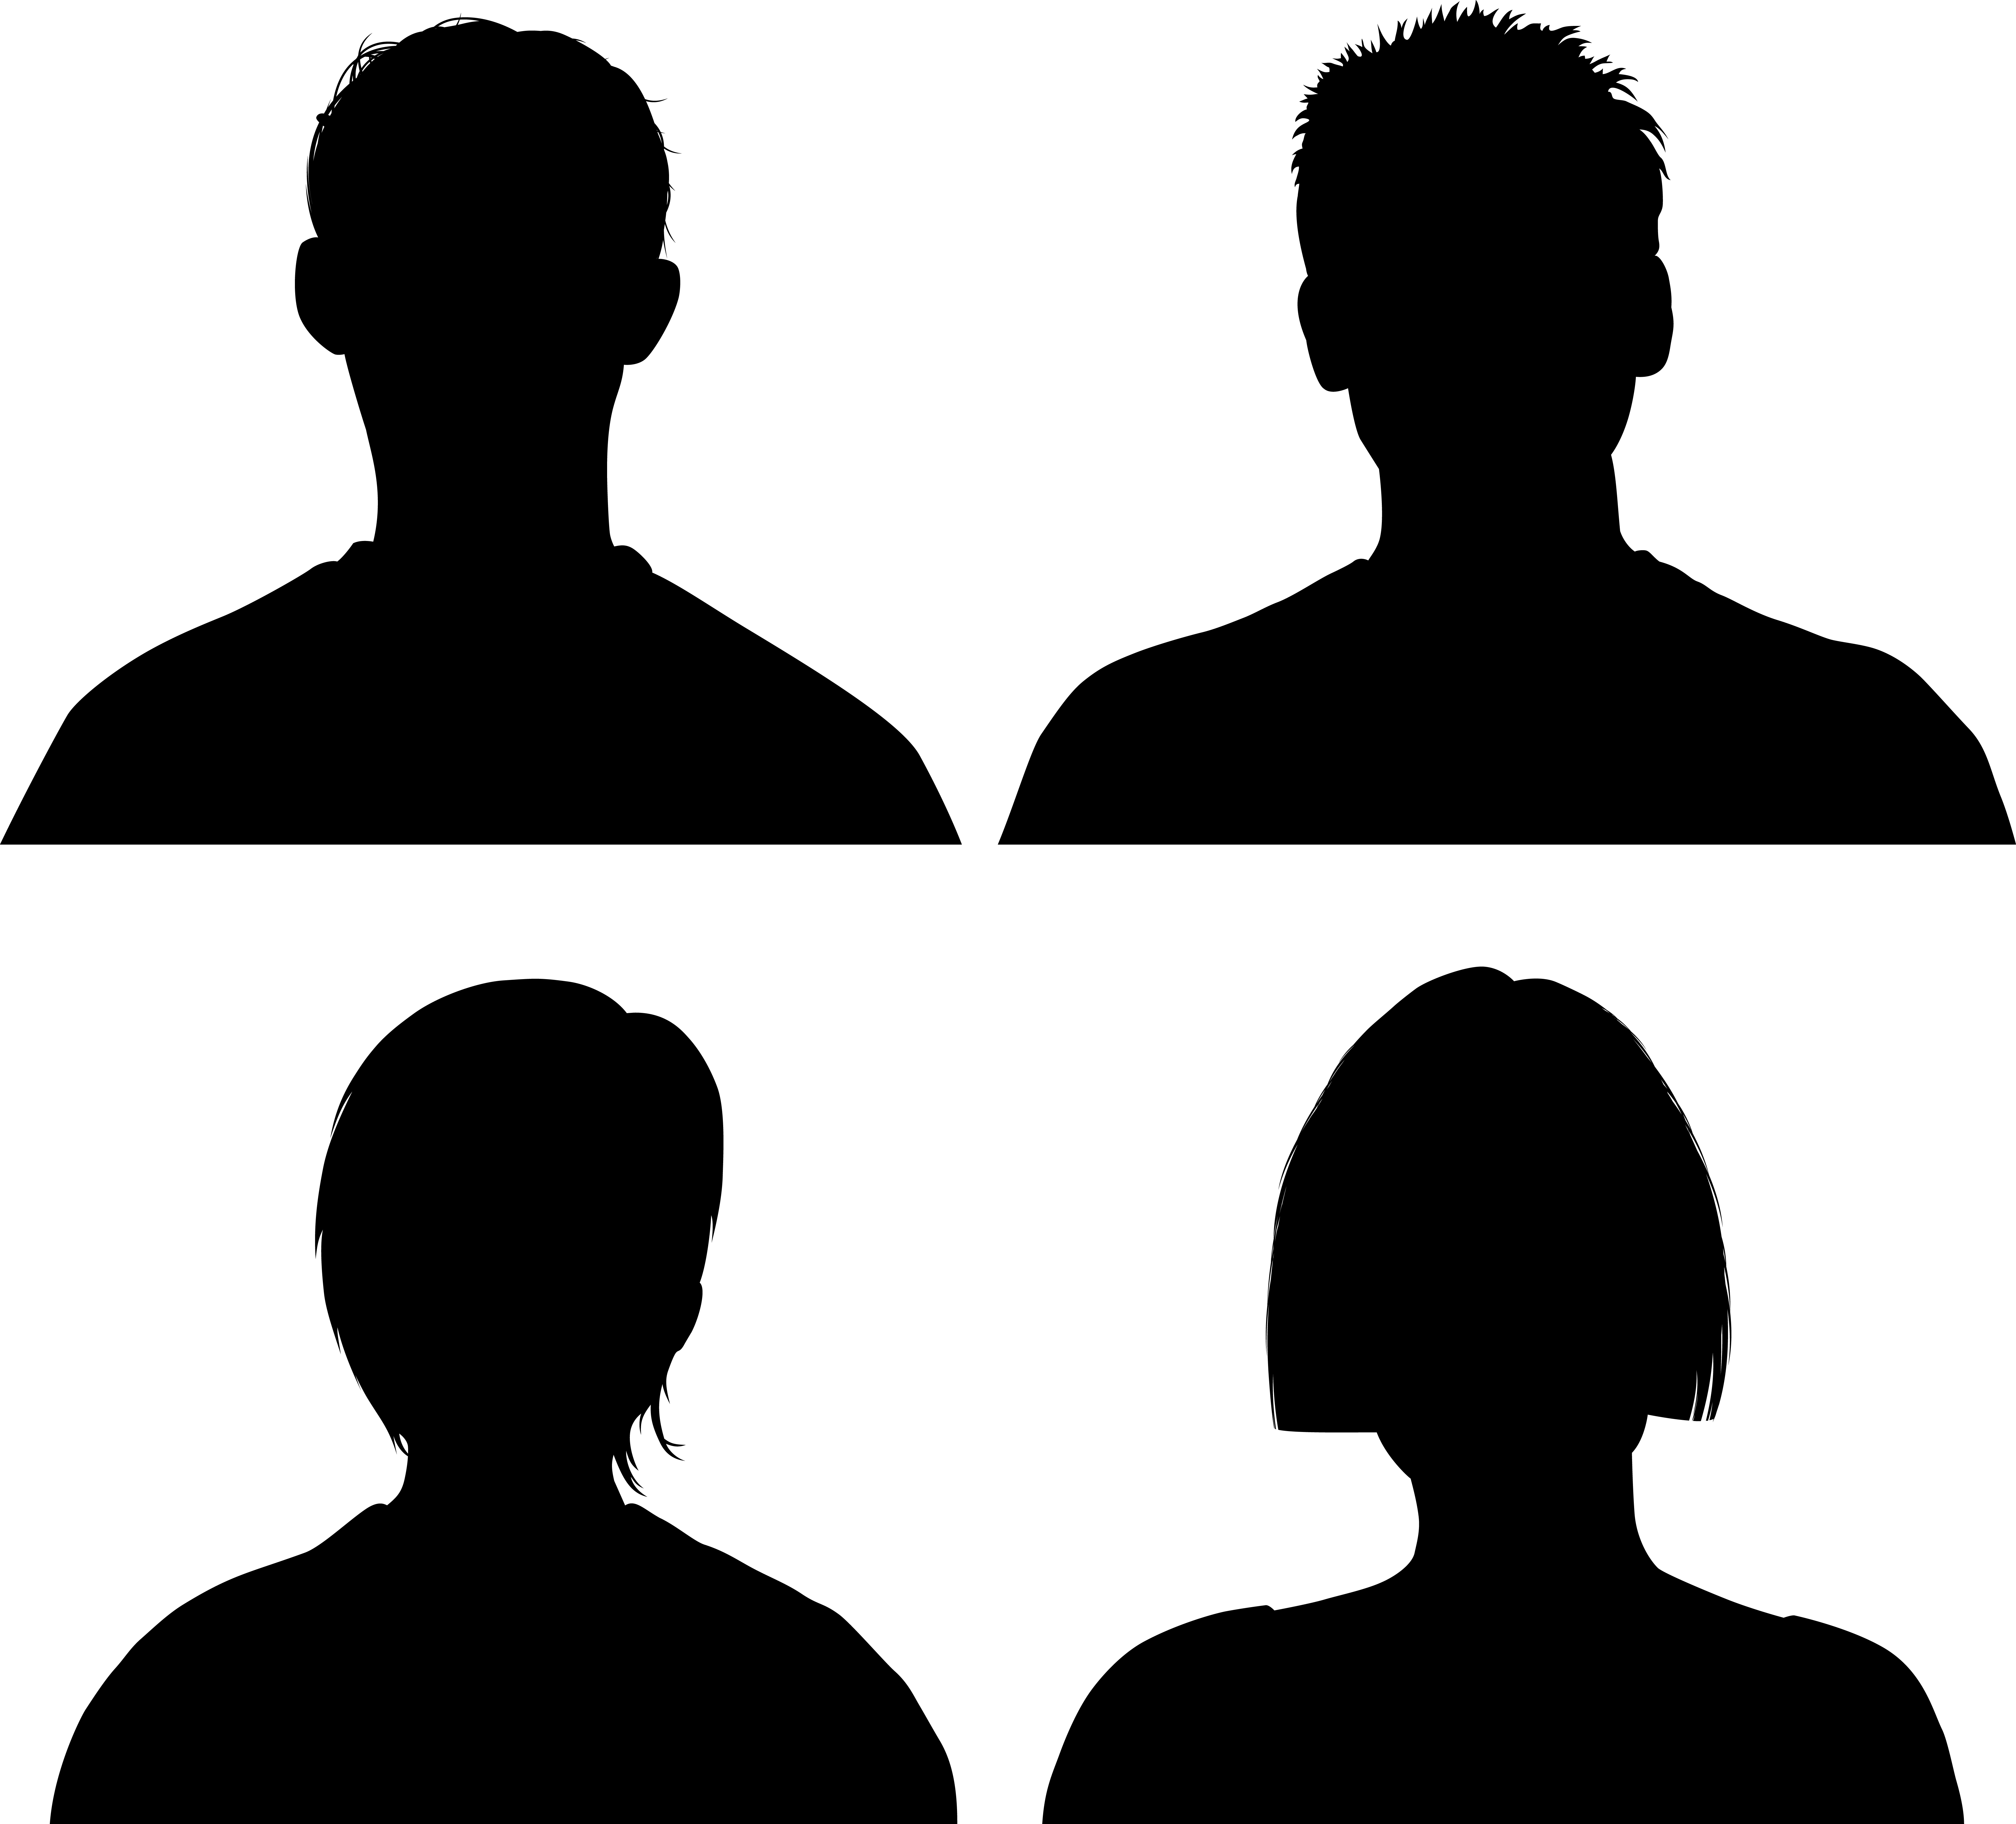 Silhouette Heads.